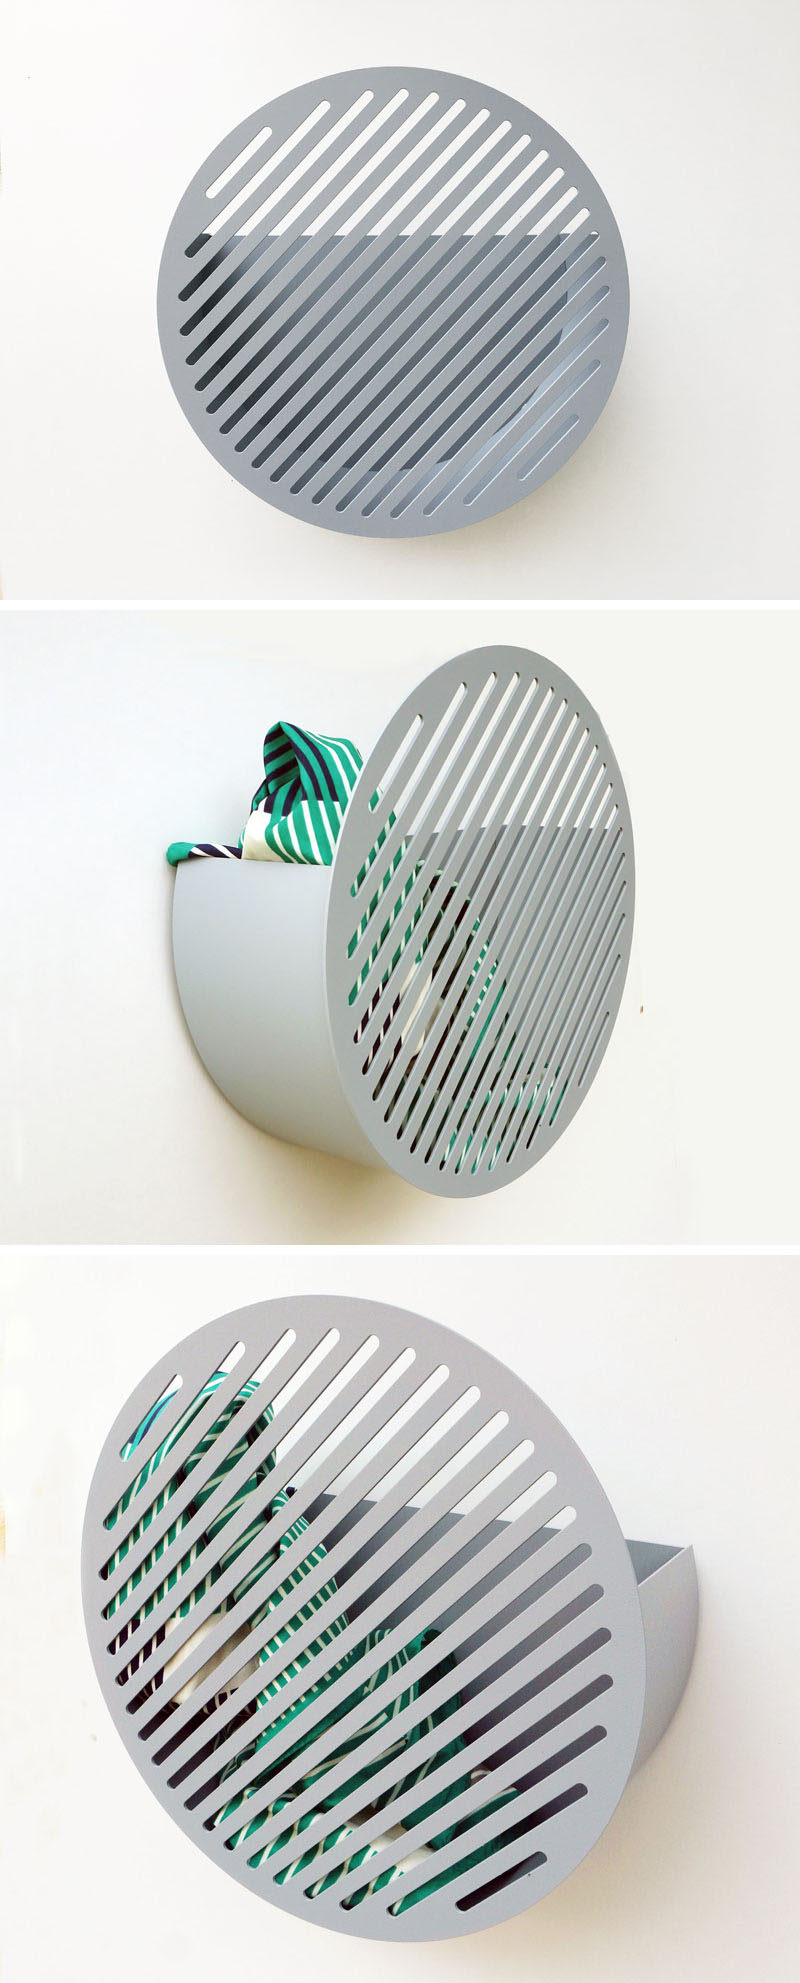 Swedish design studio Andréason & Leibel, have created a modern wall basket storage shelf that features a graphic diagonal pattern on the front. #WallBasket #ModernDecor #ModernHomeDecor #Storage #Design